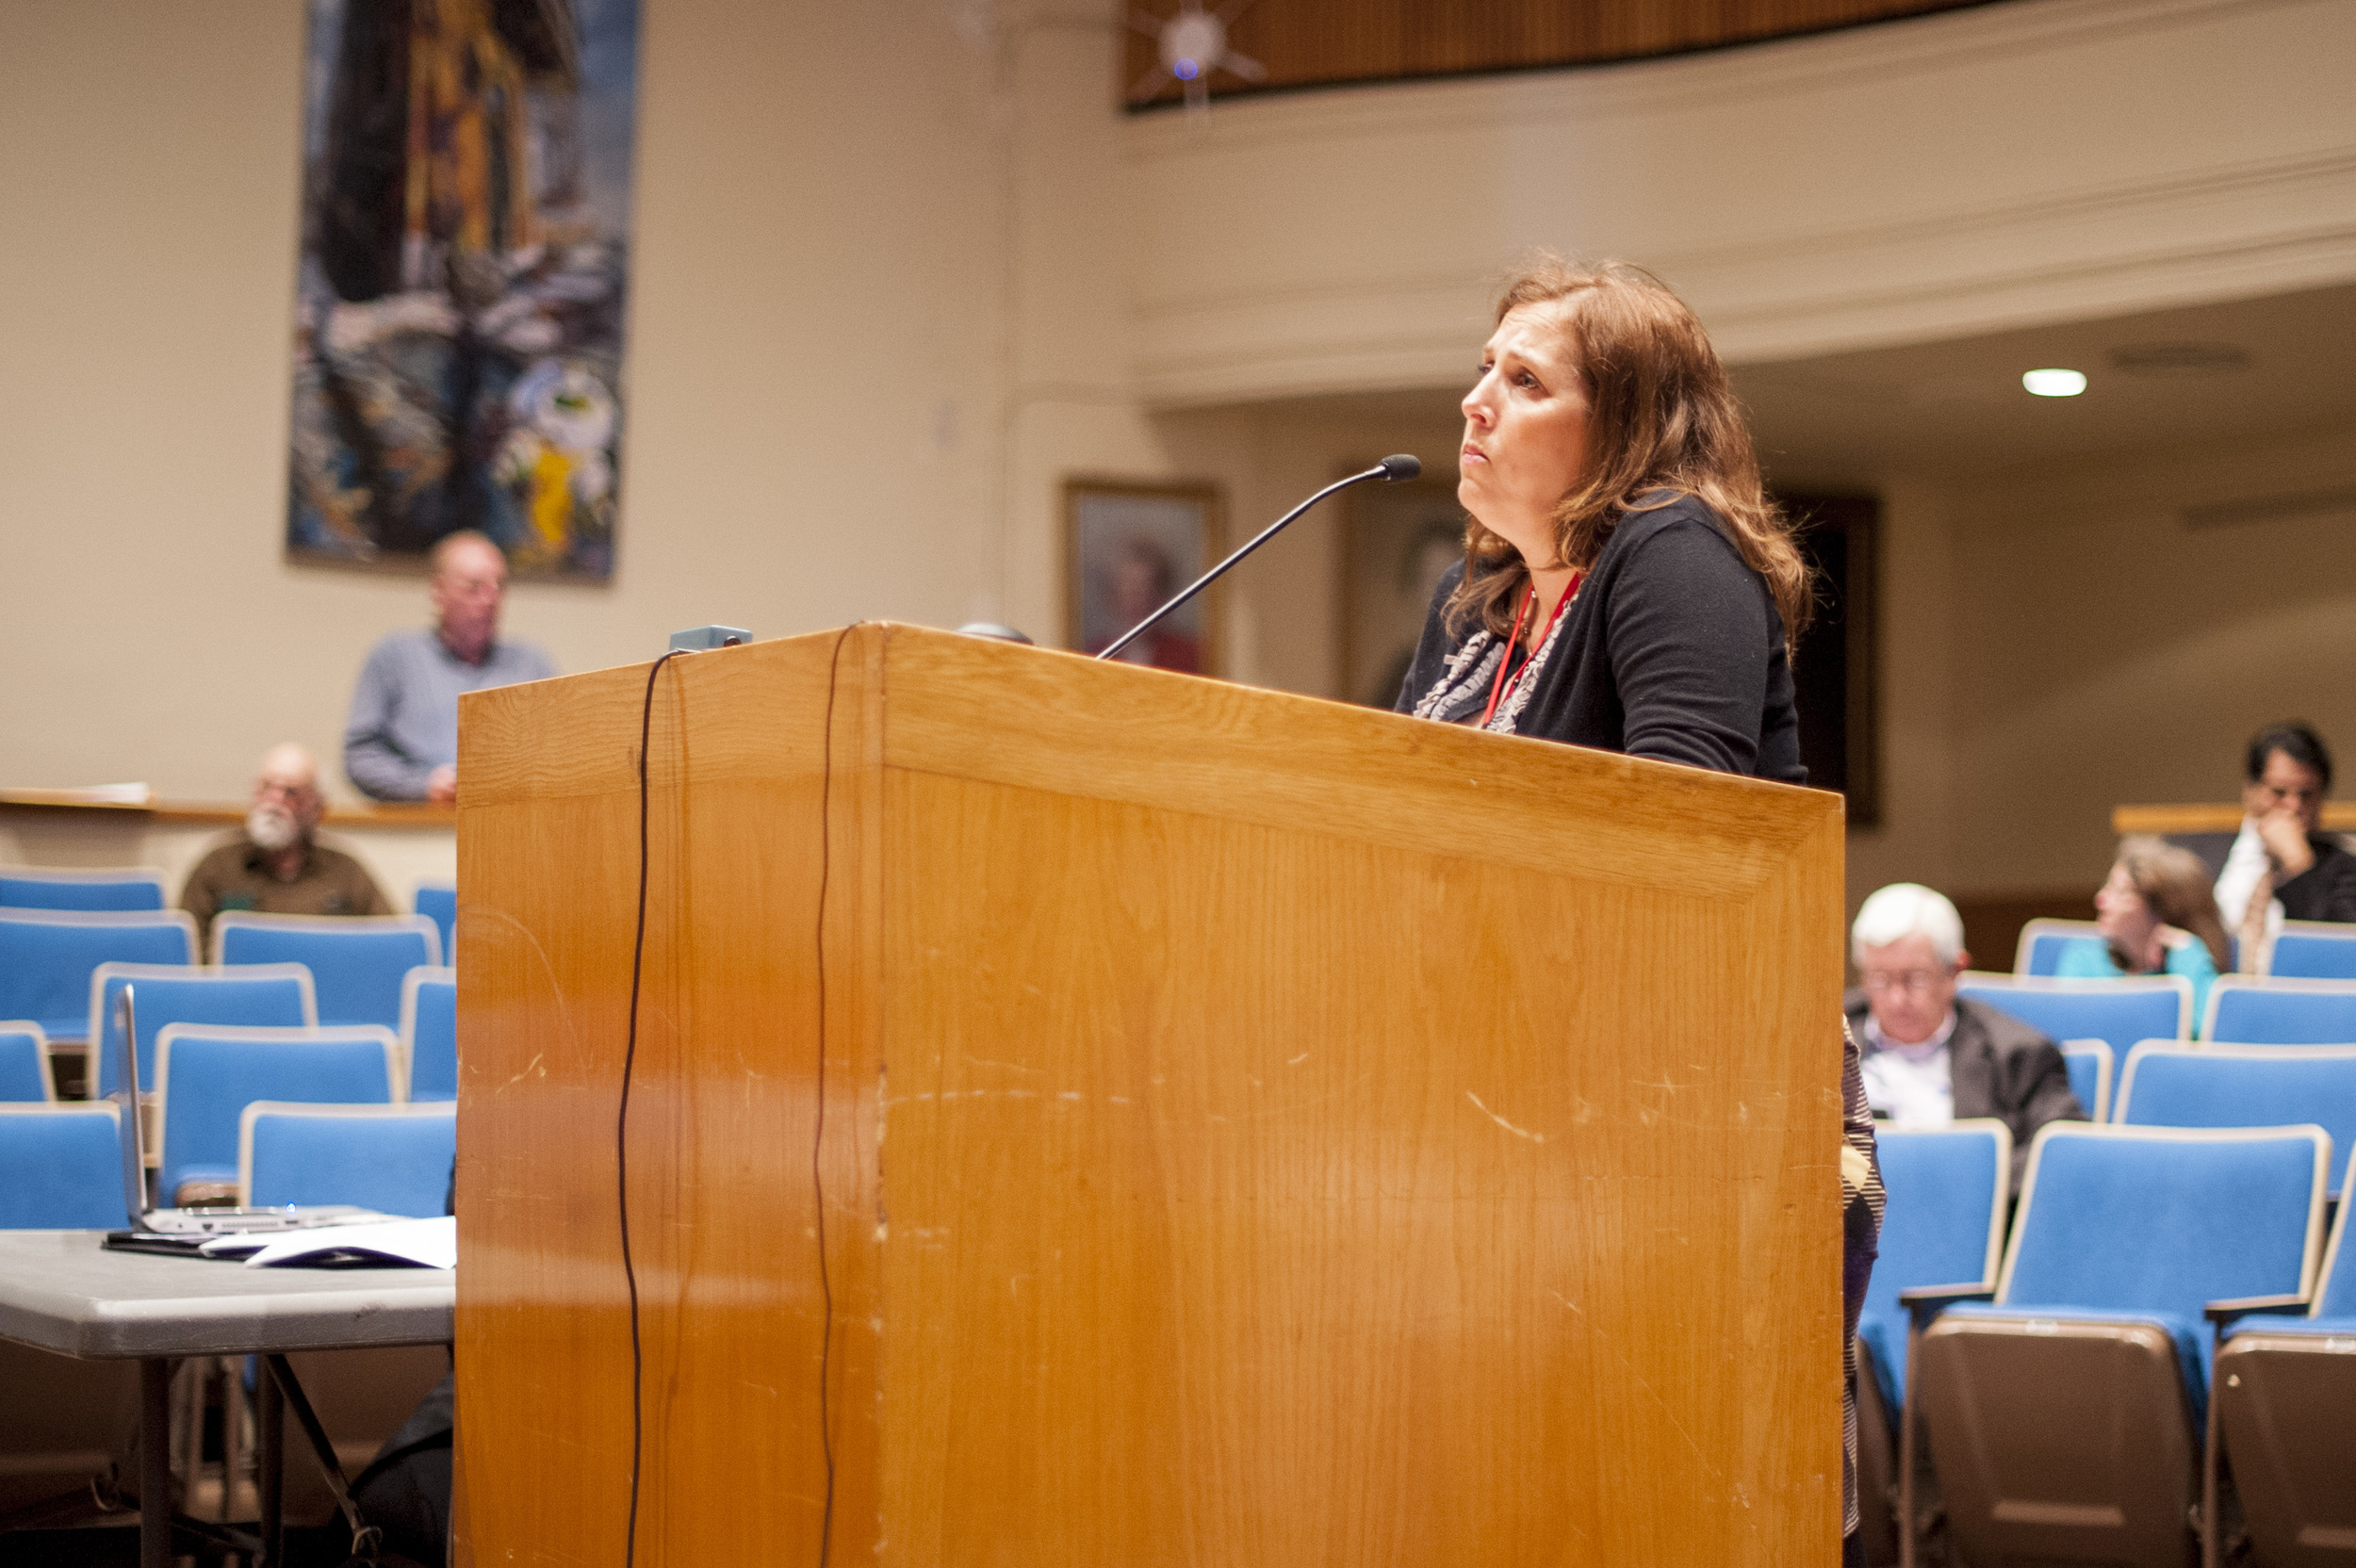 Deborah Weiss, Elwood School District PTA president, speaks during Tuesday's Huntington Town Board meeting, taking issue with a New York State Court of Appeals ruling that has effectively dismantled local sex offender laws.